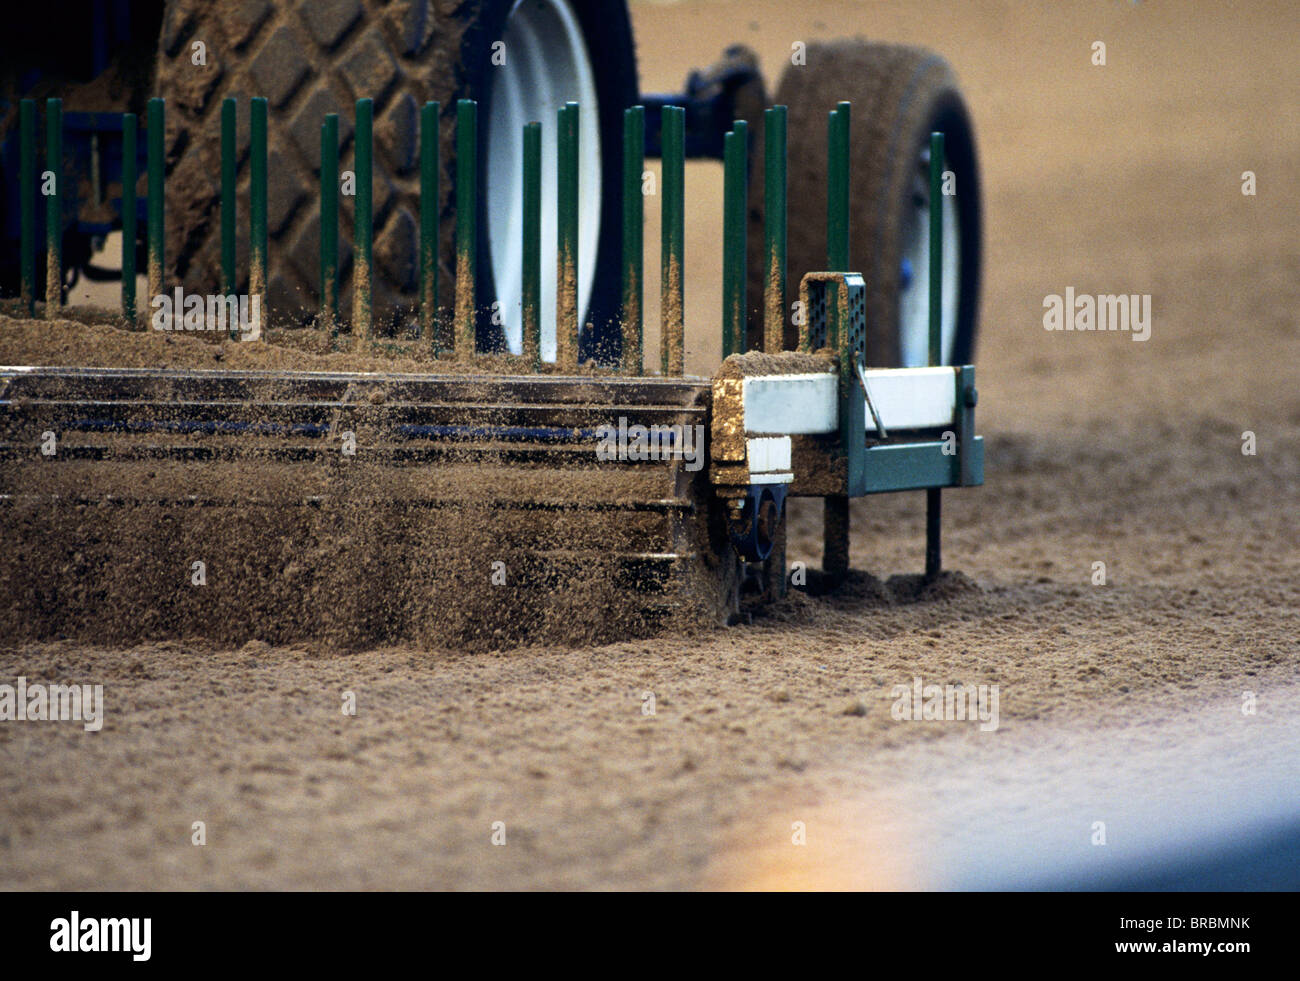 Tractor pulls a grooming machine across a horse racing track - Stock Image